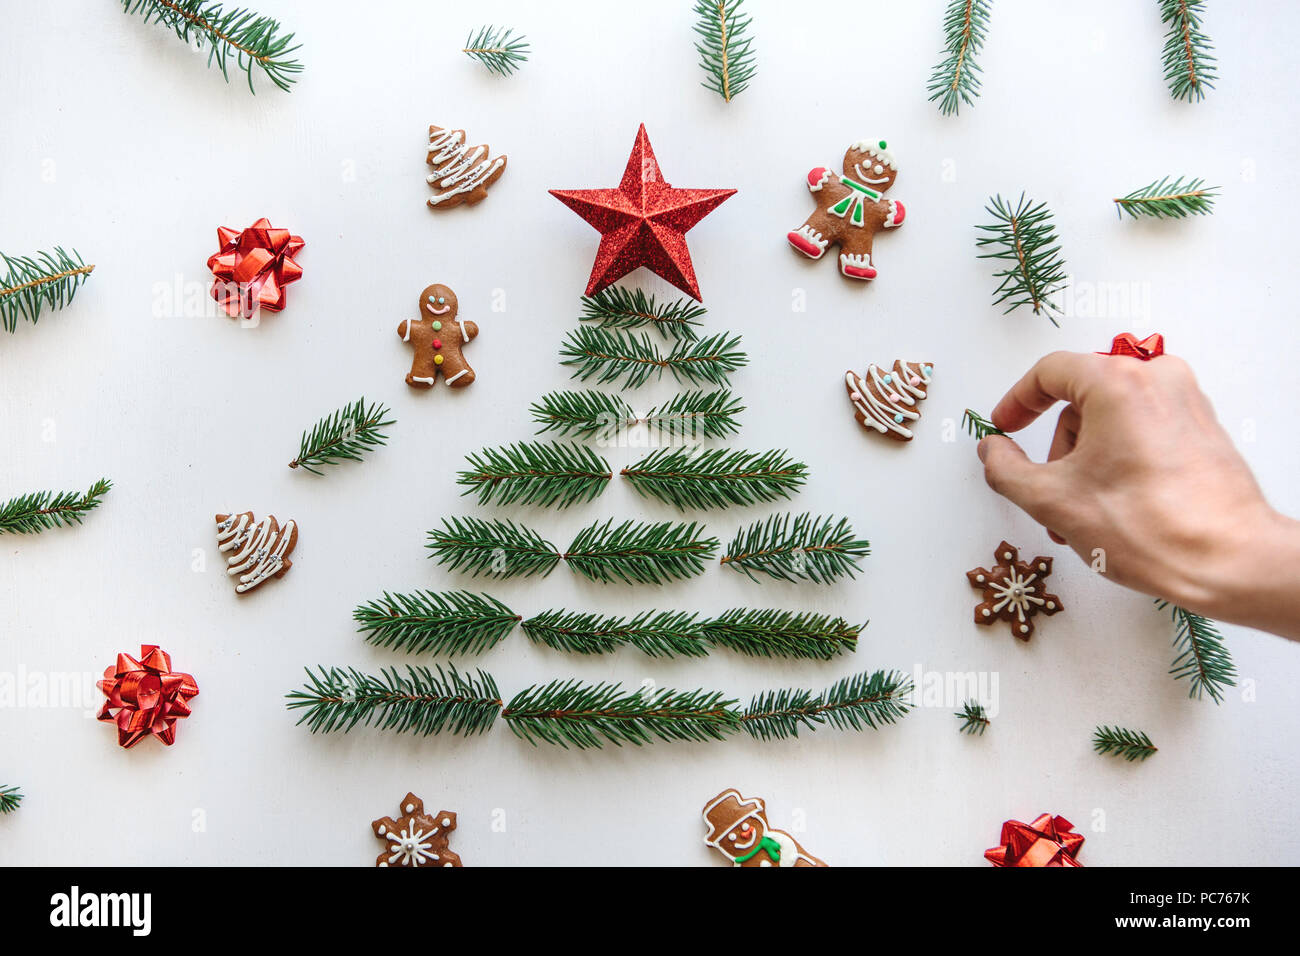 creative idea for christmas or new year theme a person makes a creative christmas tree from fir branches and a star on top and is decorated with